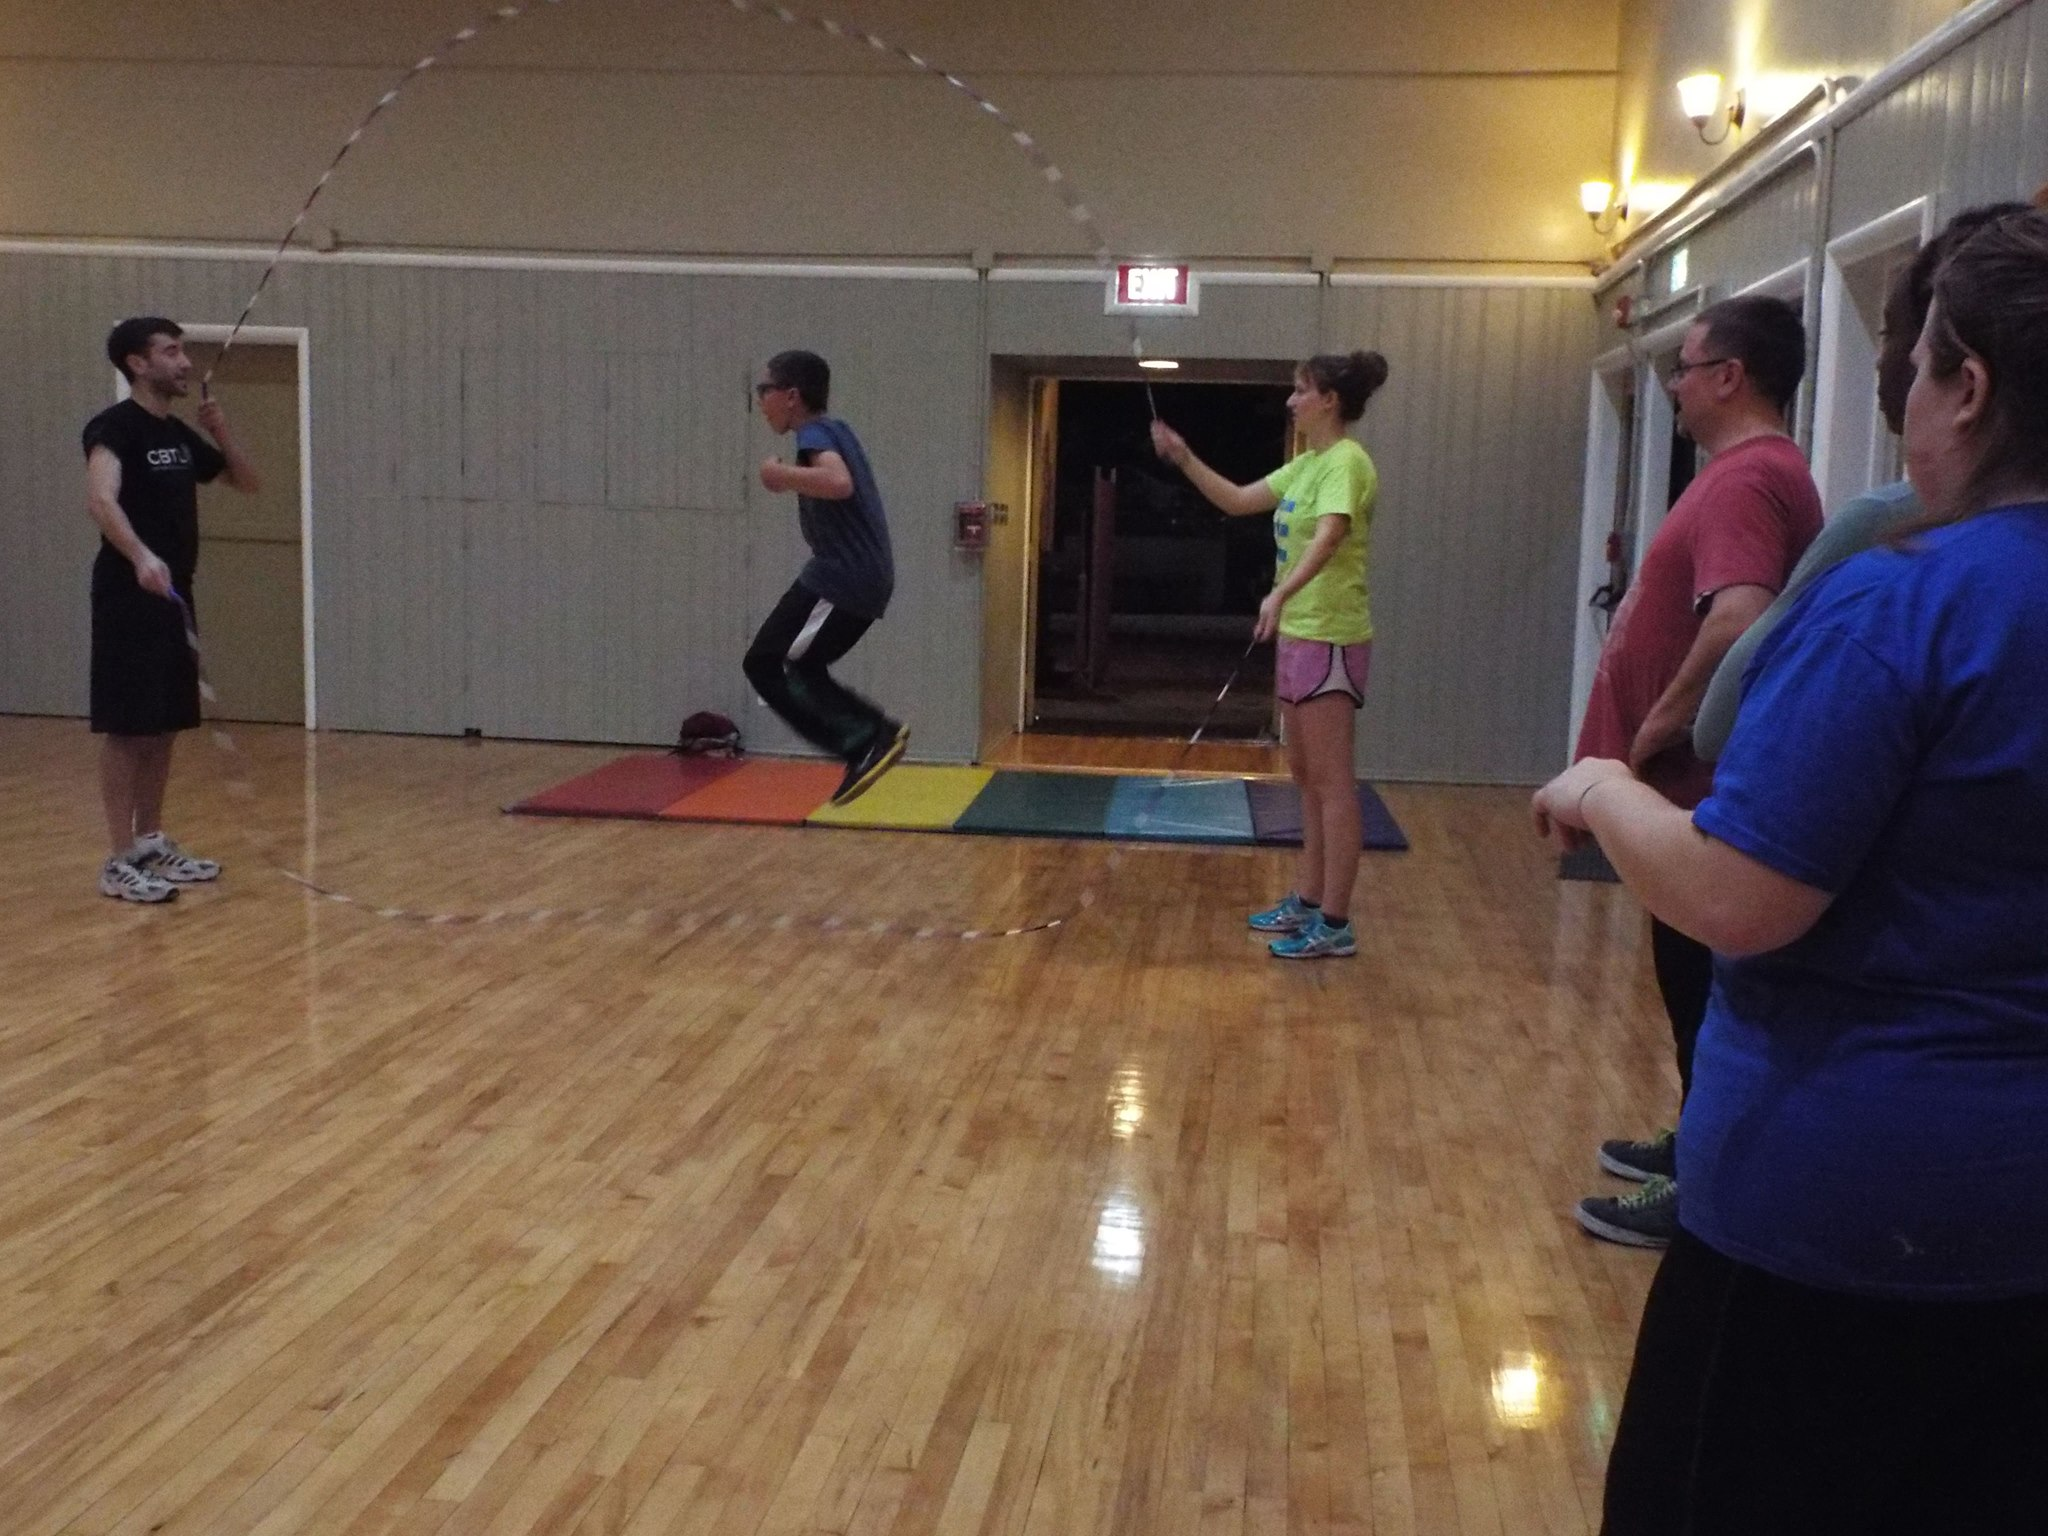 Teaching double dutch at a jump rope class in Hollywood.